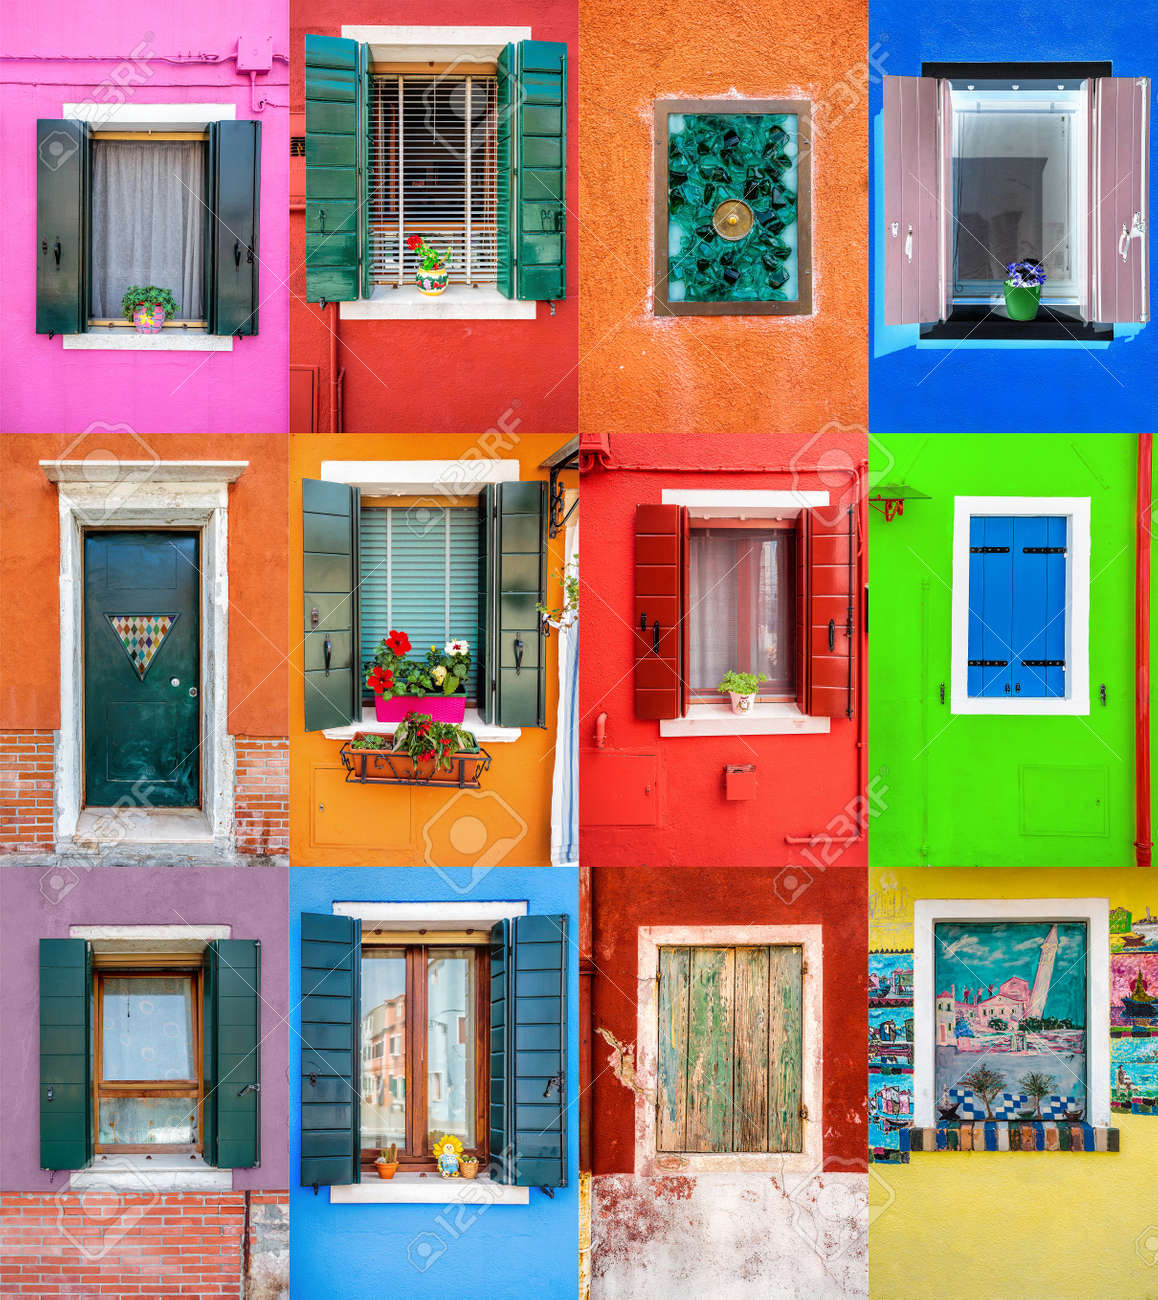 Collage set of 12 colorful windows and doors in picturesque island